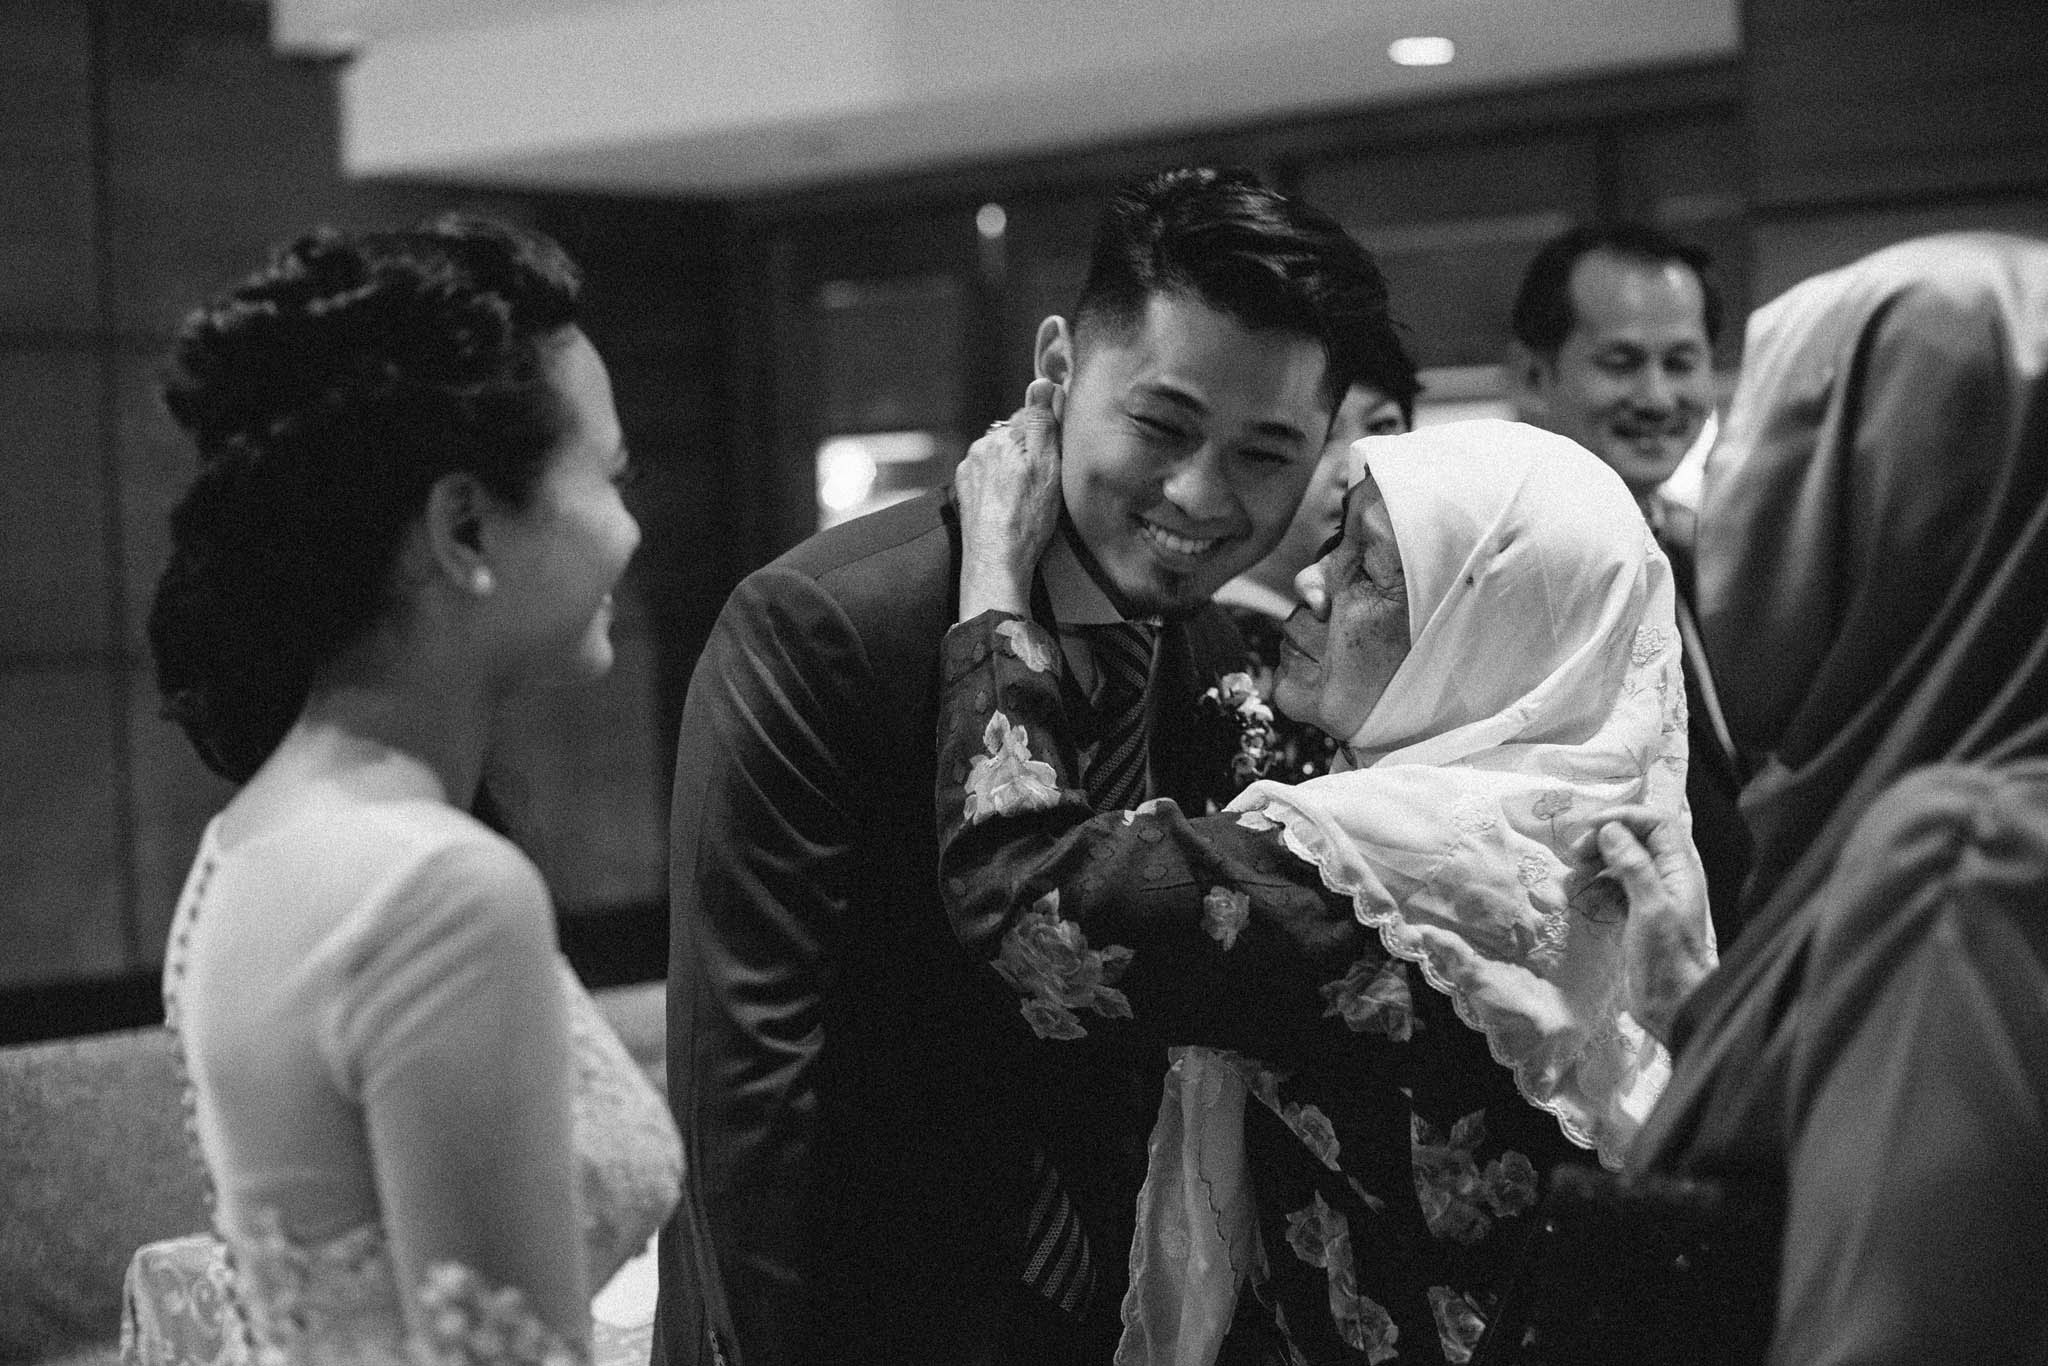 singapore-wedding-photographer-wedding-hafiana-teck-kuan-071.jpg